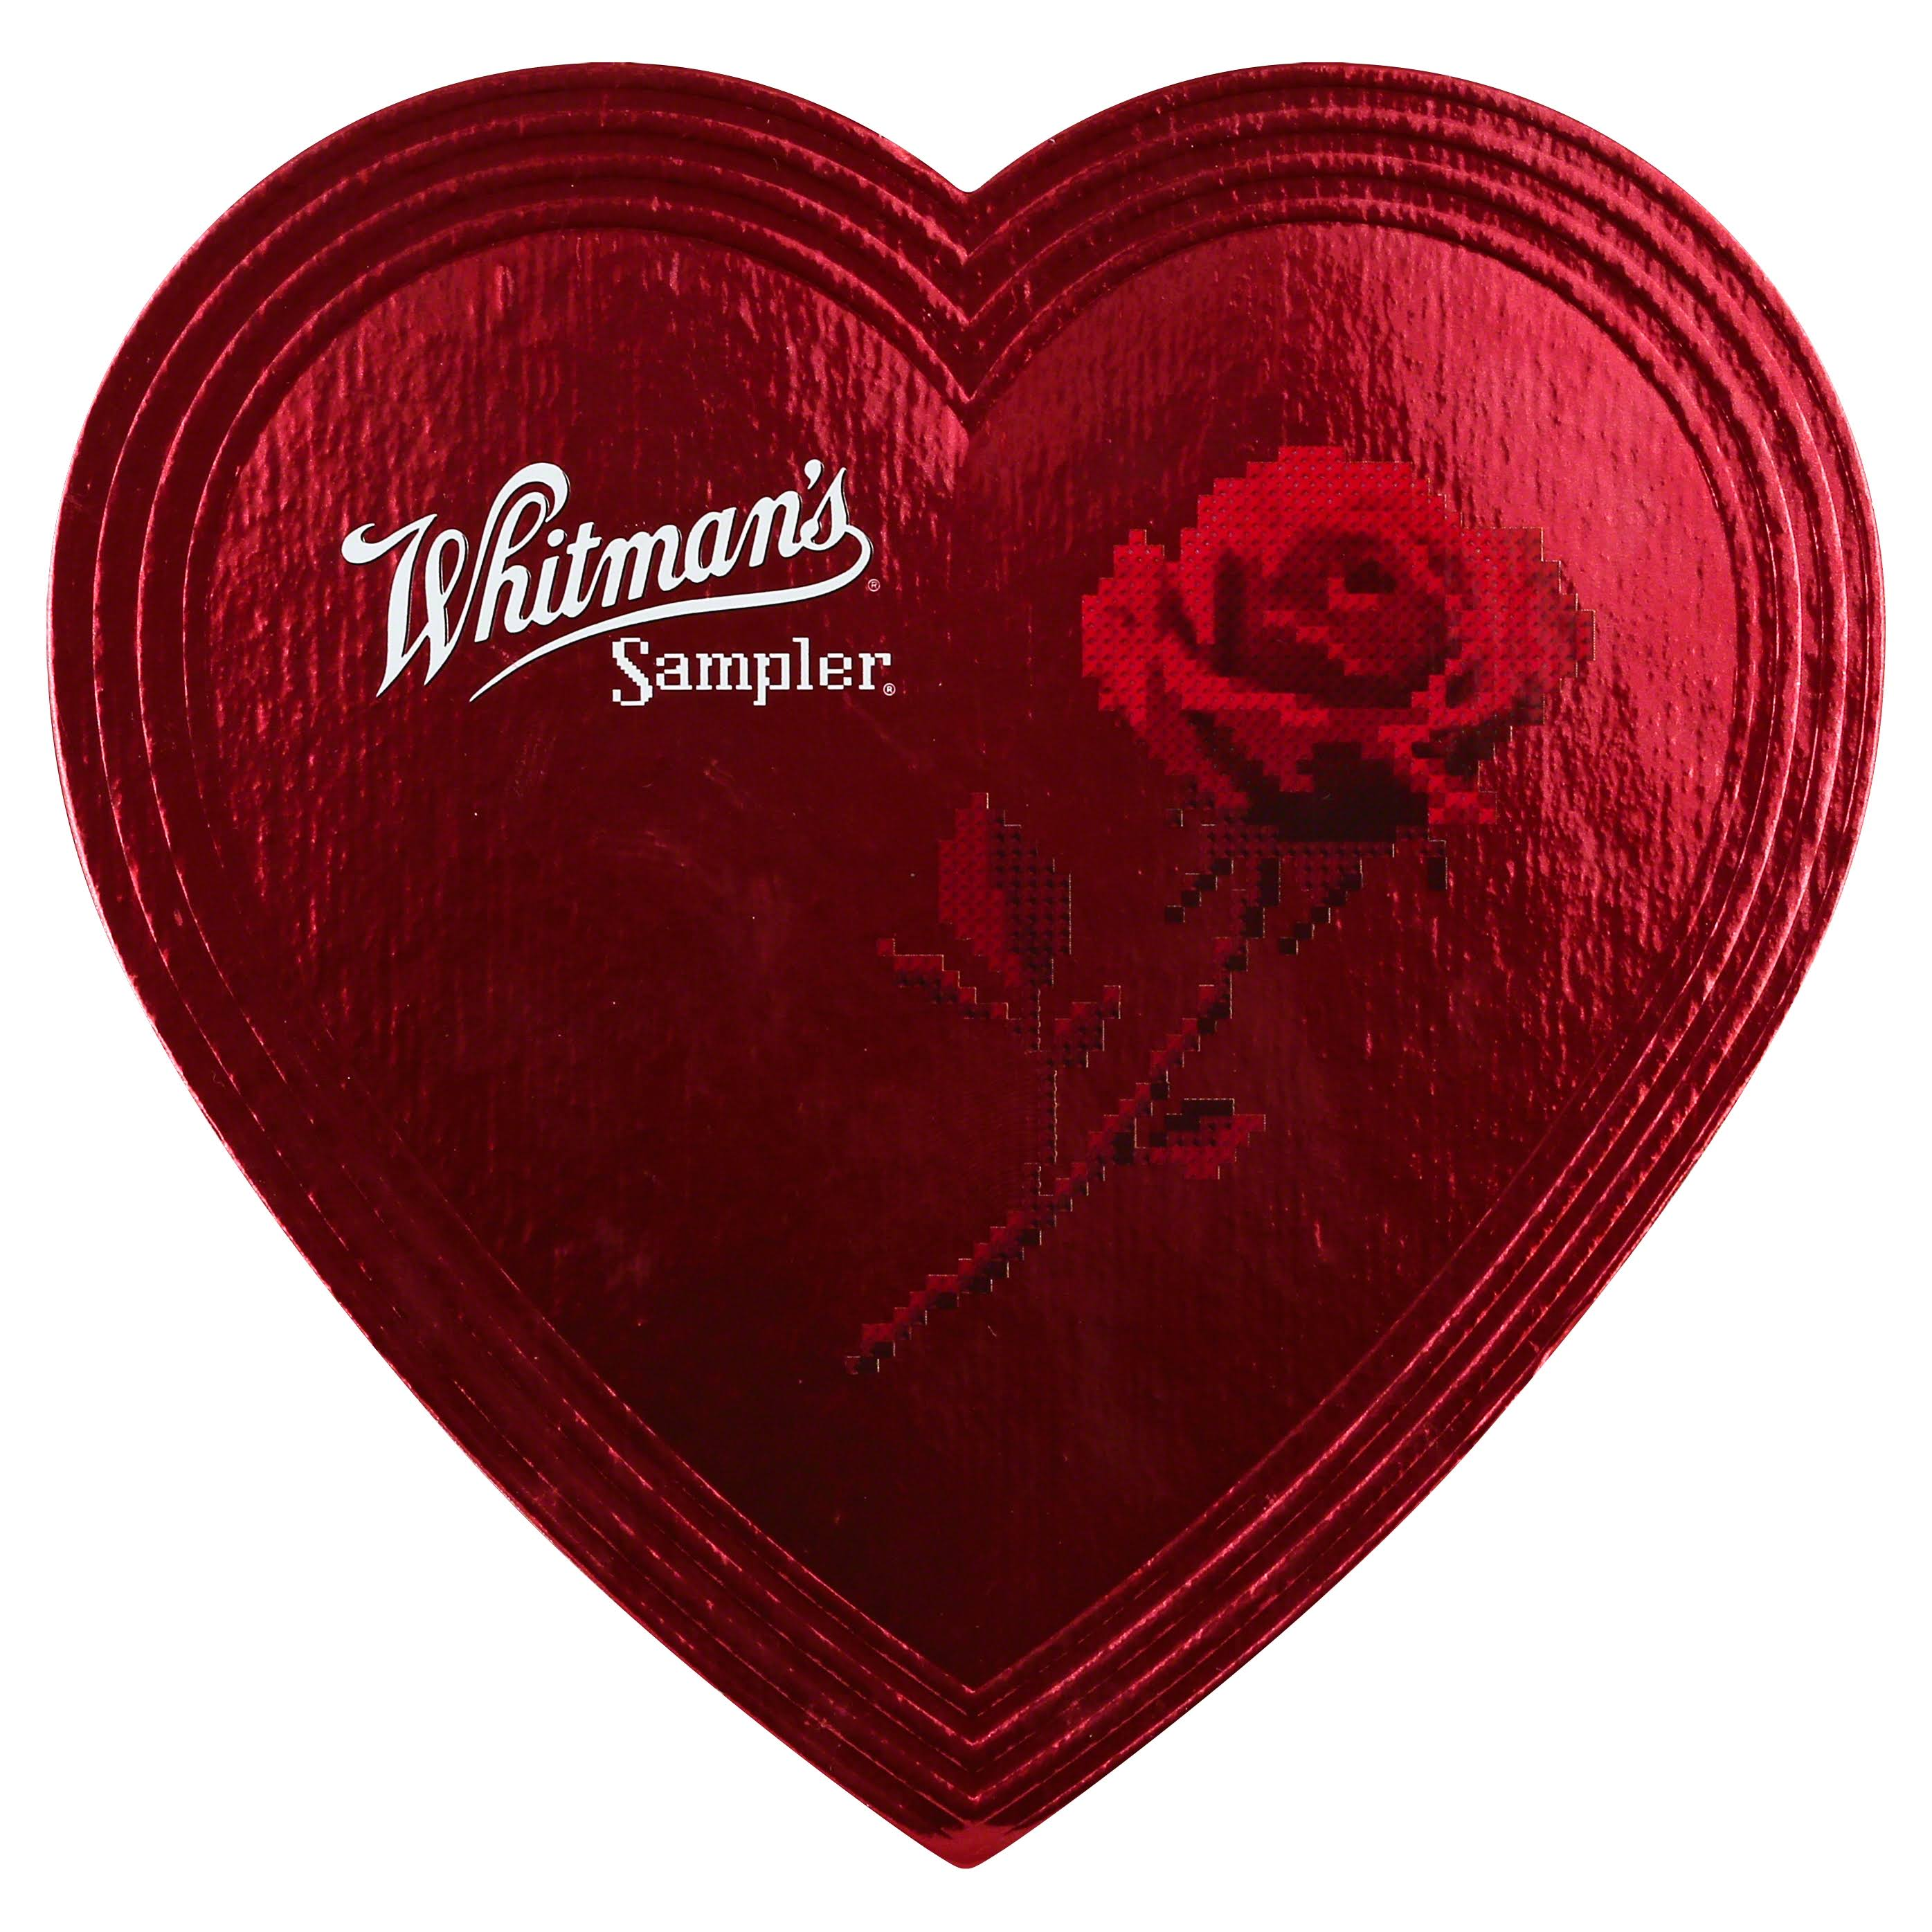 Whitman's Candies in Red Foil Heart - 3.25oz